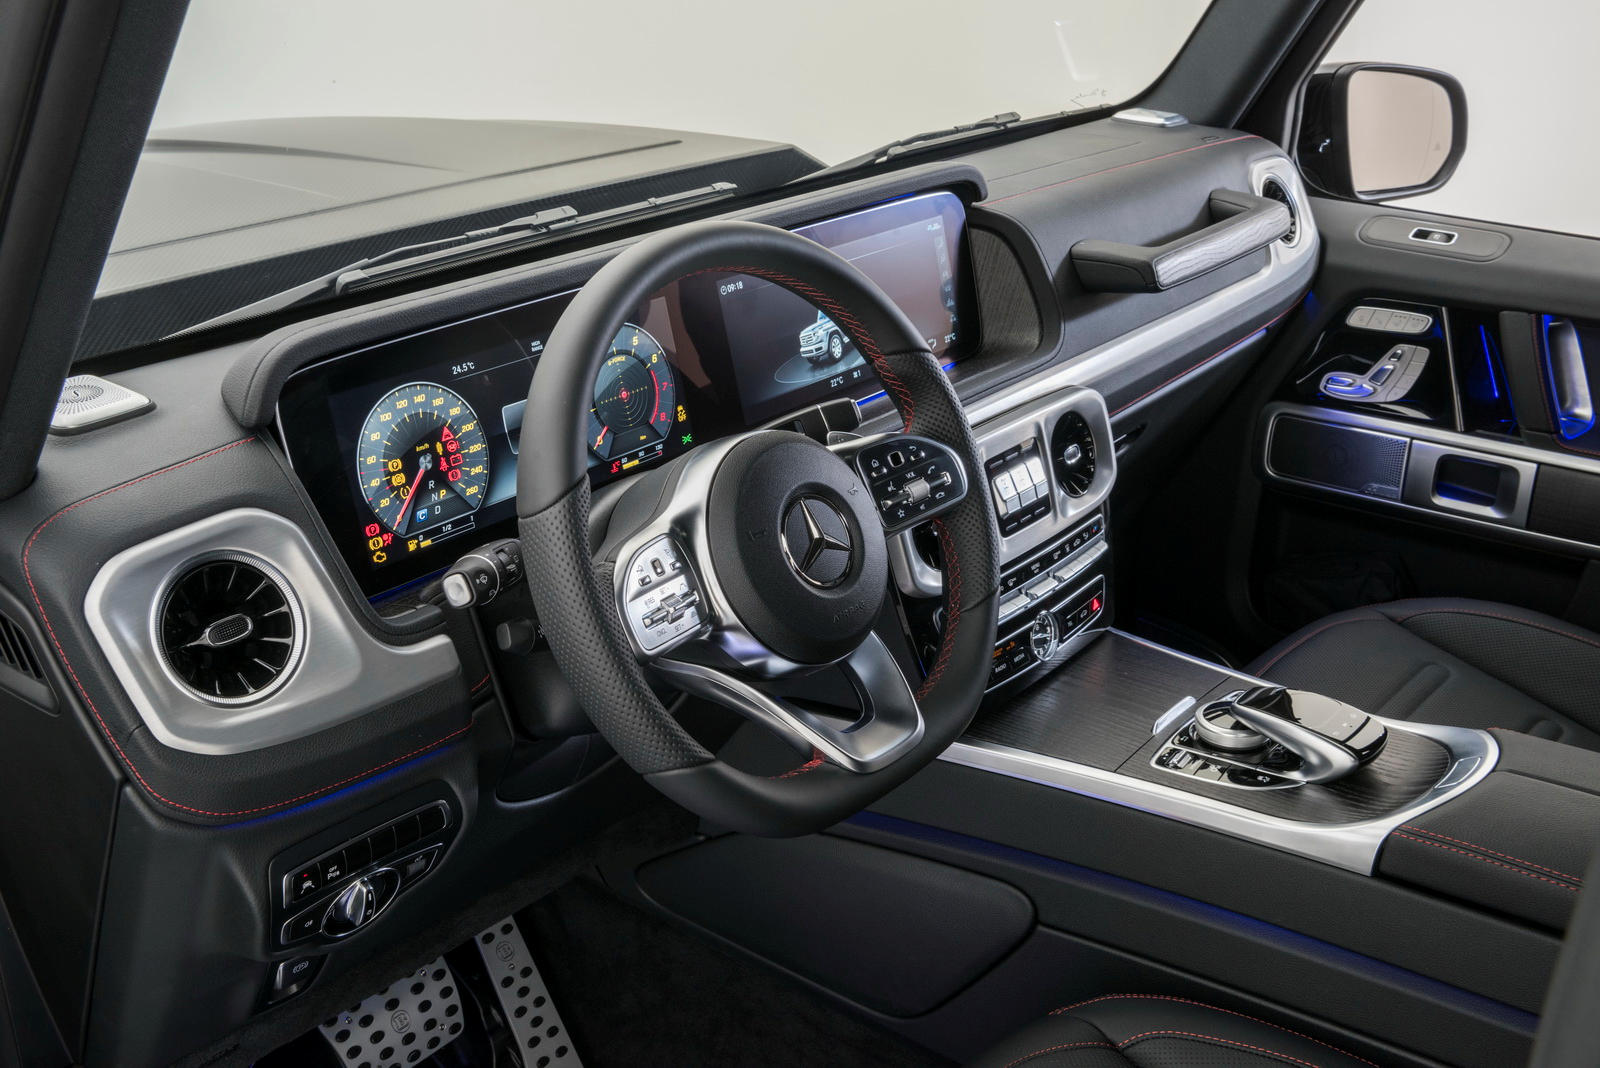 brabus tunes the 2019 mercedes benz g class to nearly 500 hp ForThe Latest Mercedes Benz